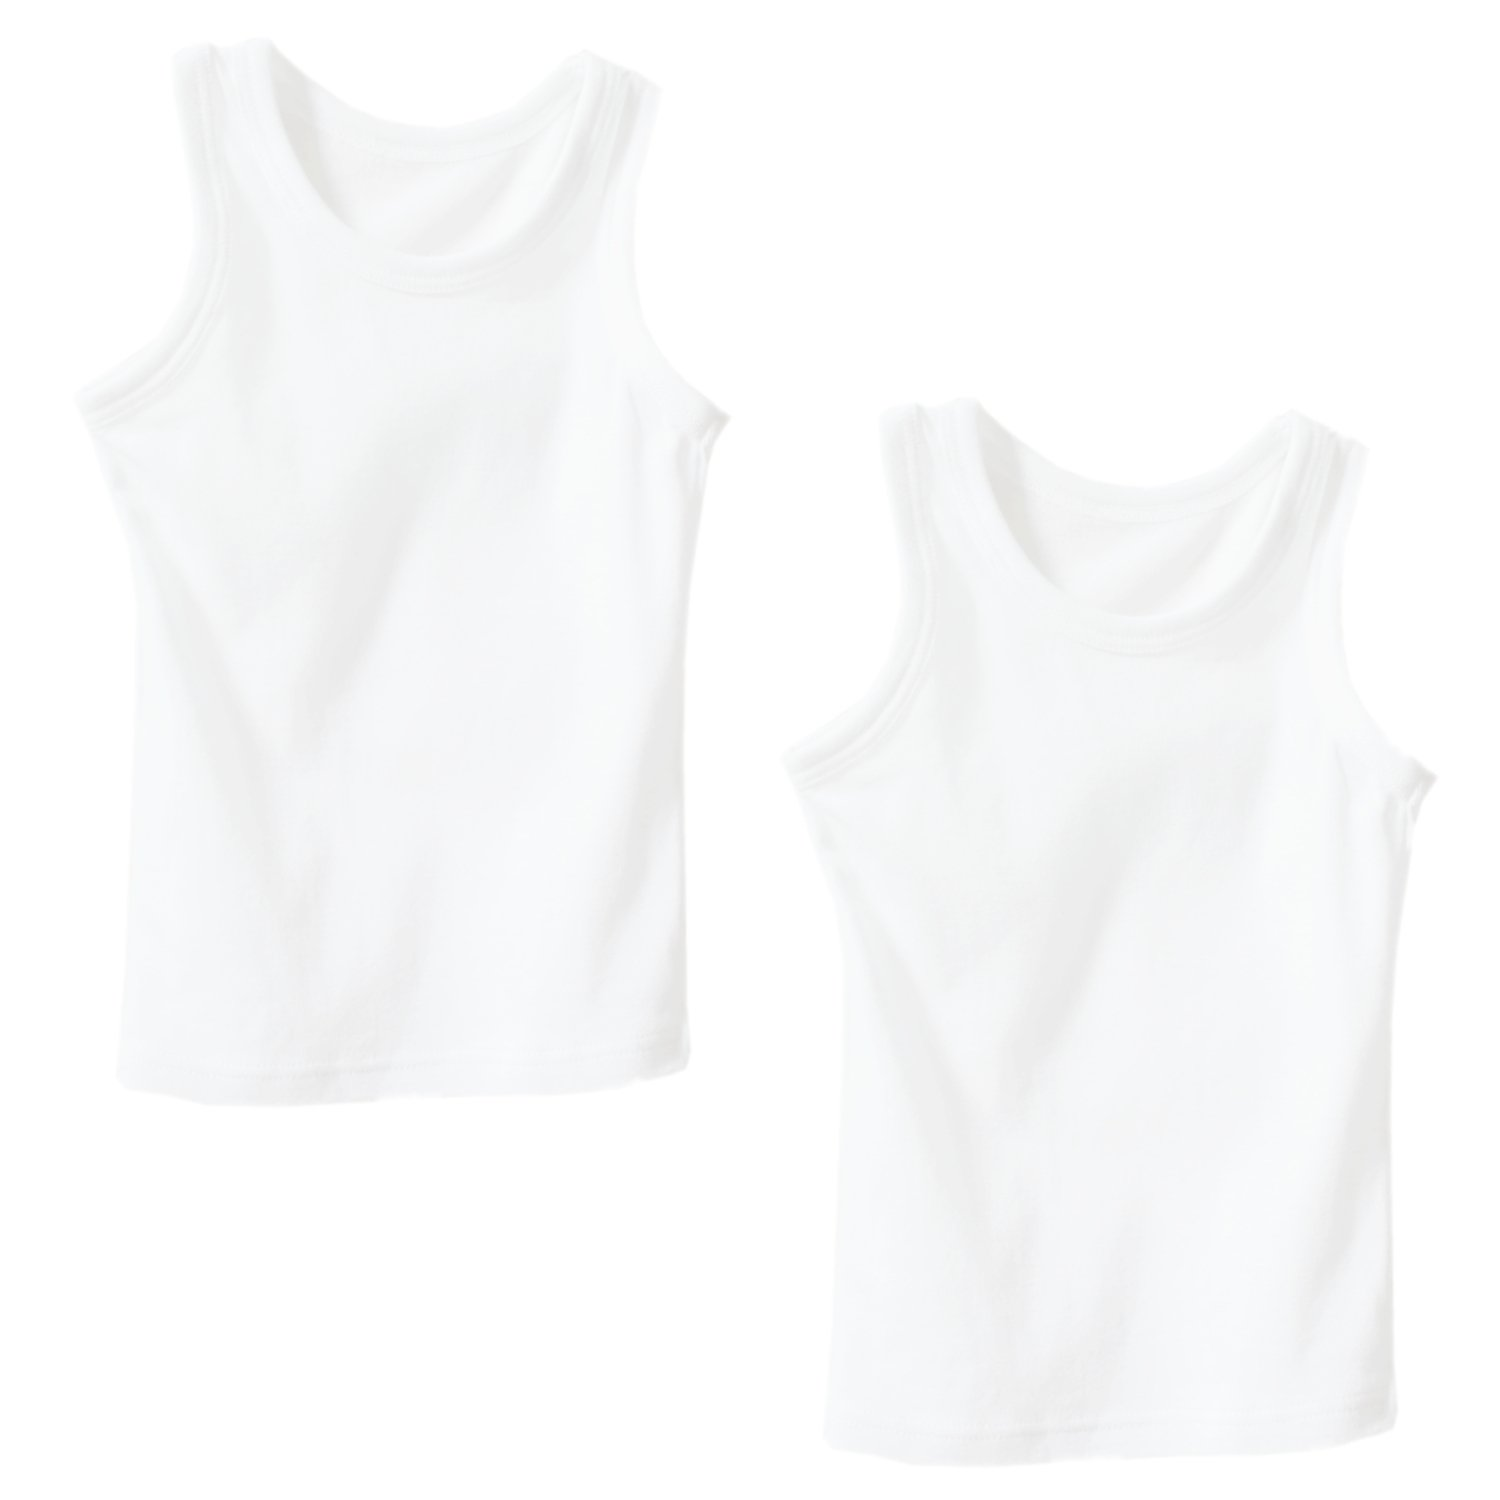 VeaRin Little Boys Toddler Tank Top Undershirts White 2 Pack (3T-4T)